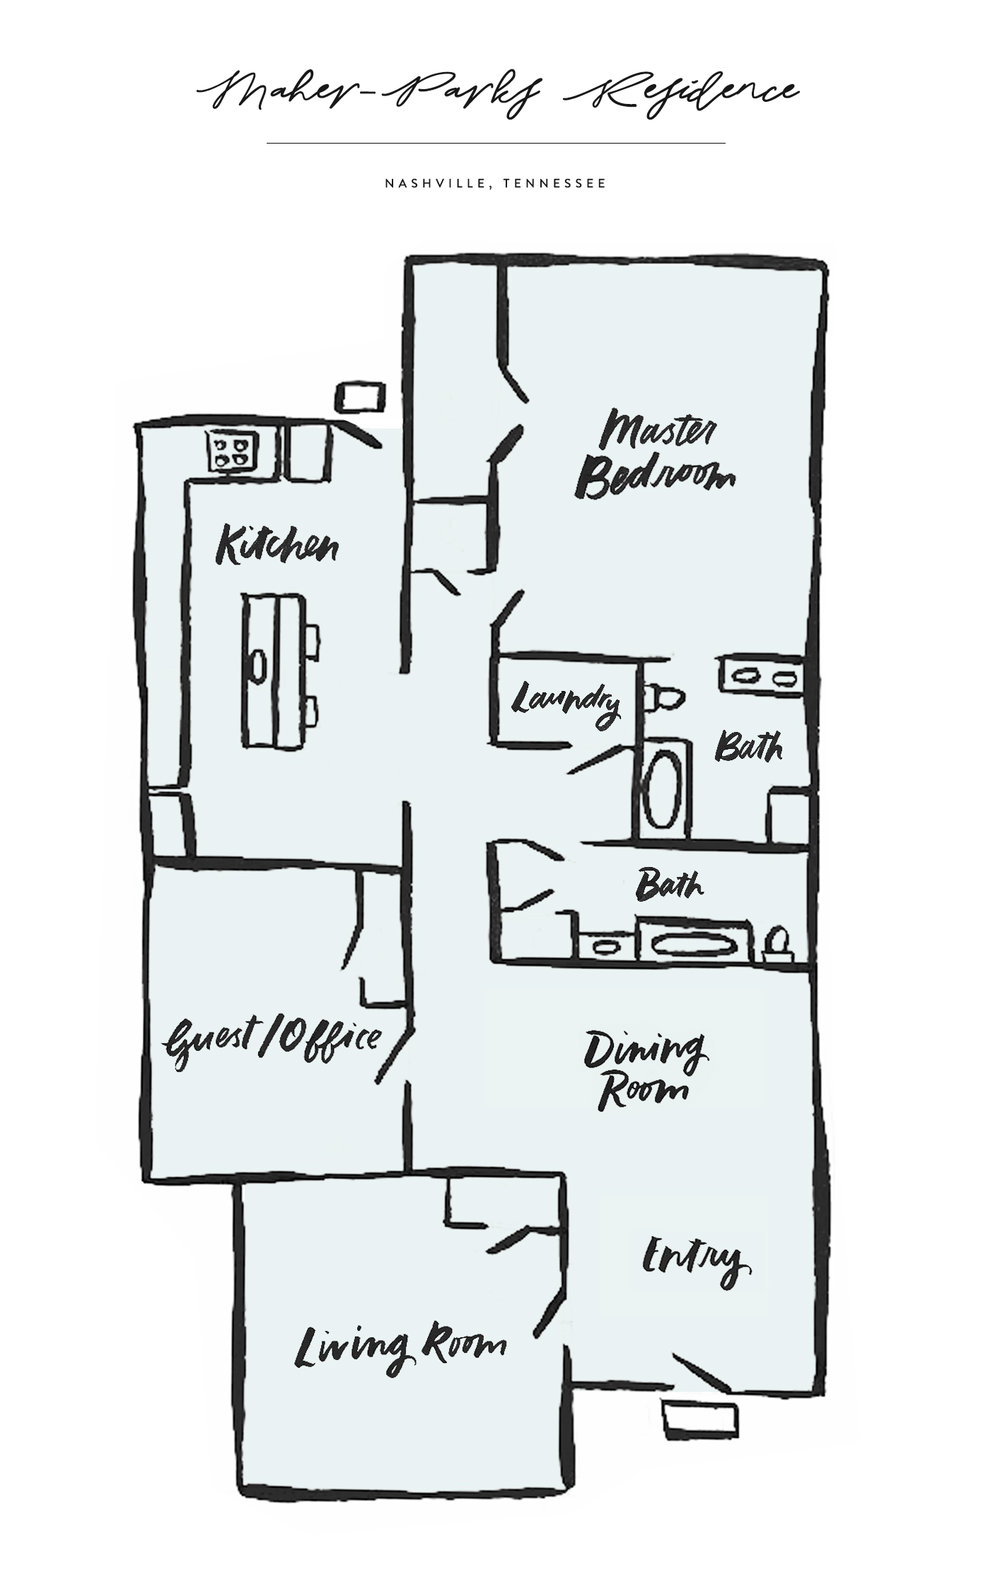 Maher-Parks Home Layout.jpg